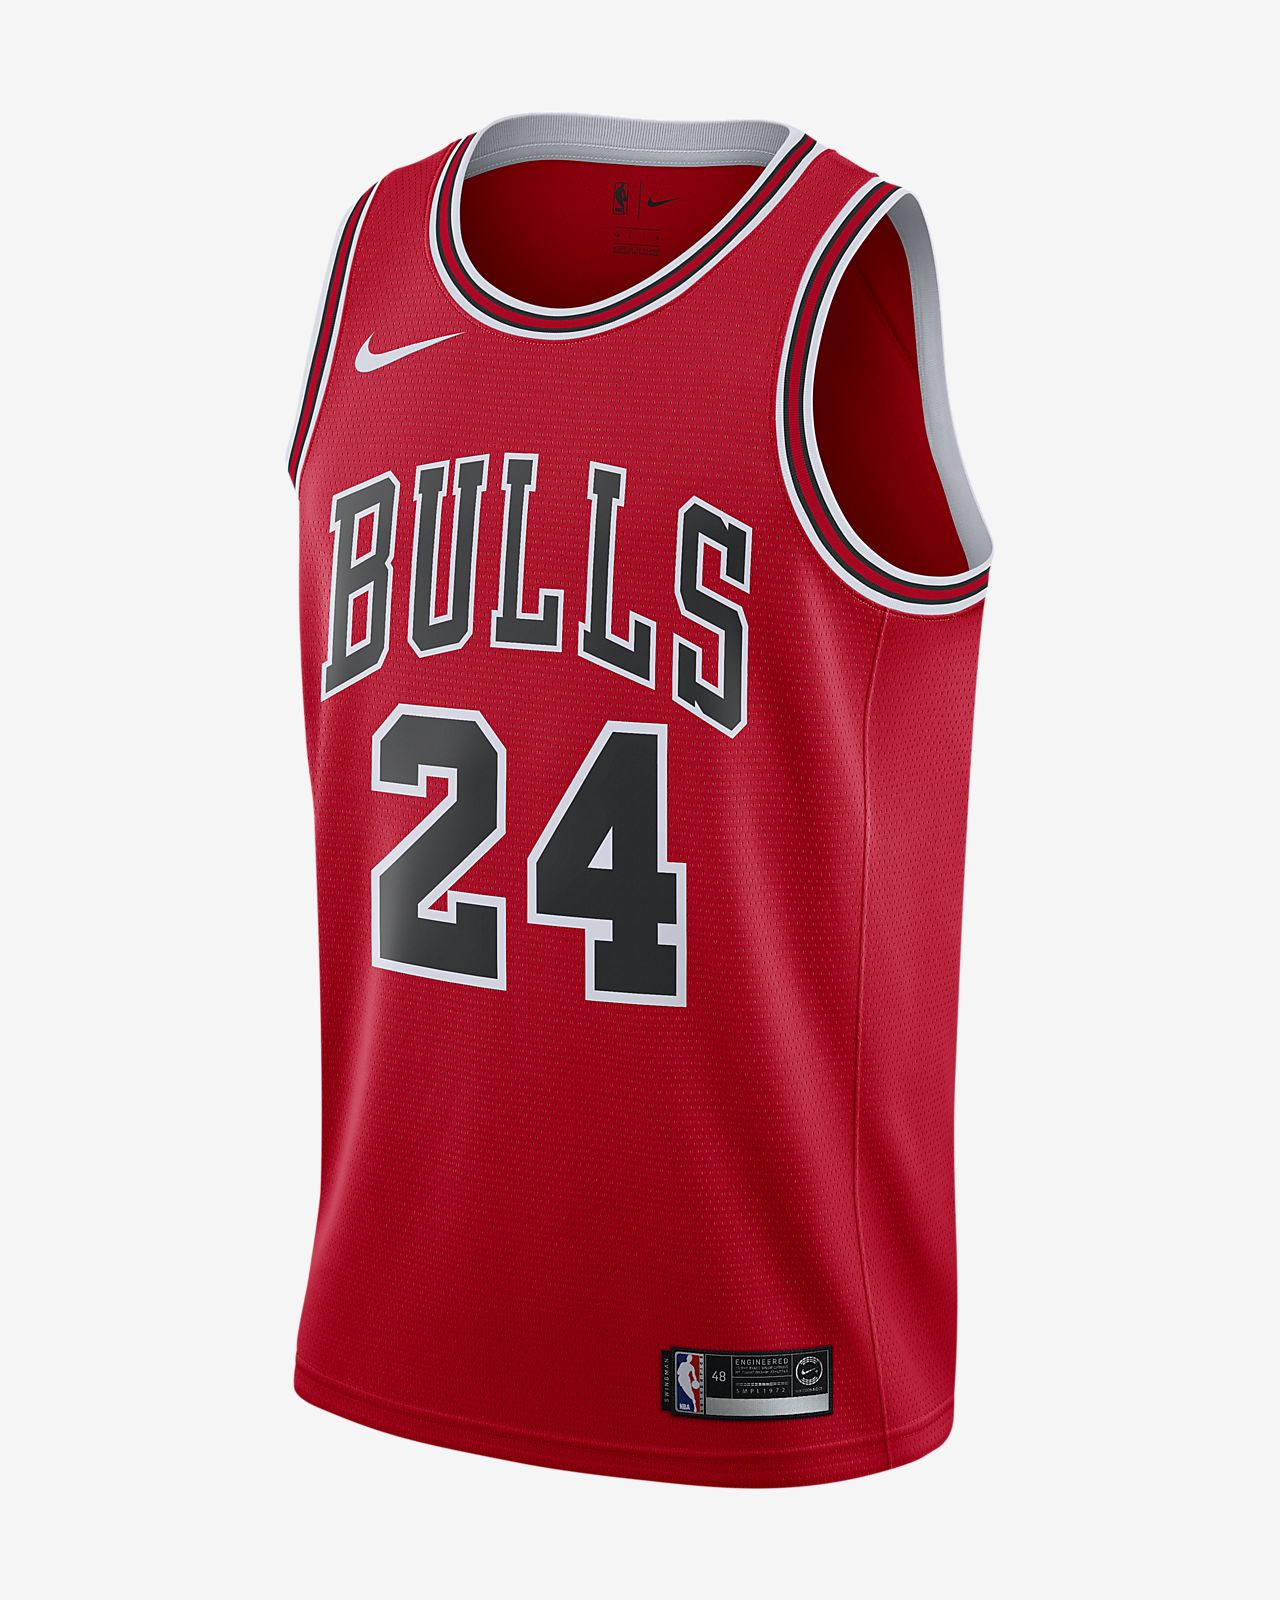 2ac44aecaf4756 ... Maglia Nike NBA Connected Lauri Markkanen Icon Edition Swingman  (Chicago Bulls) - Uomo